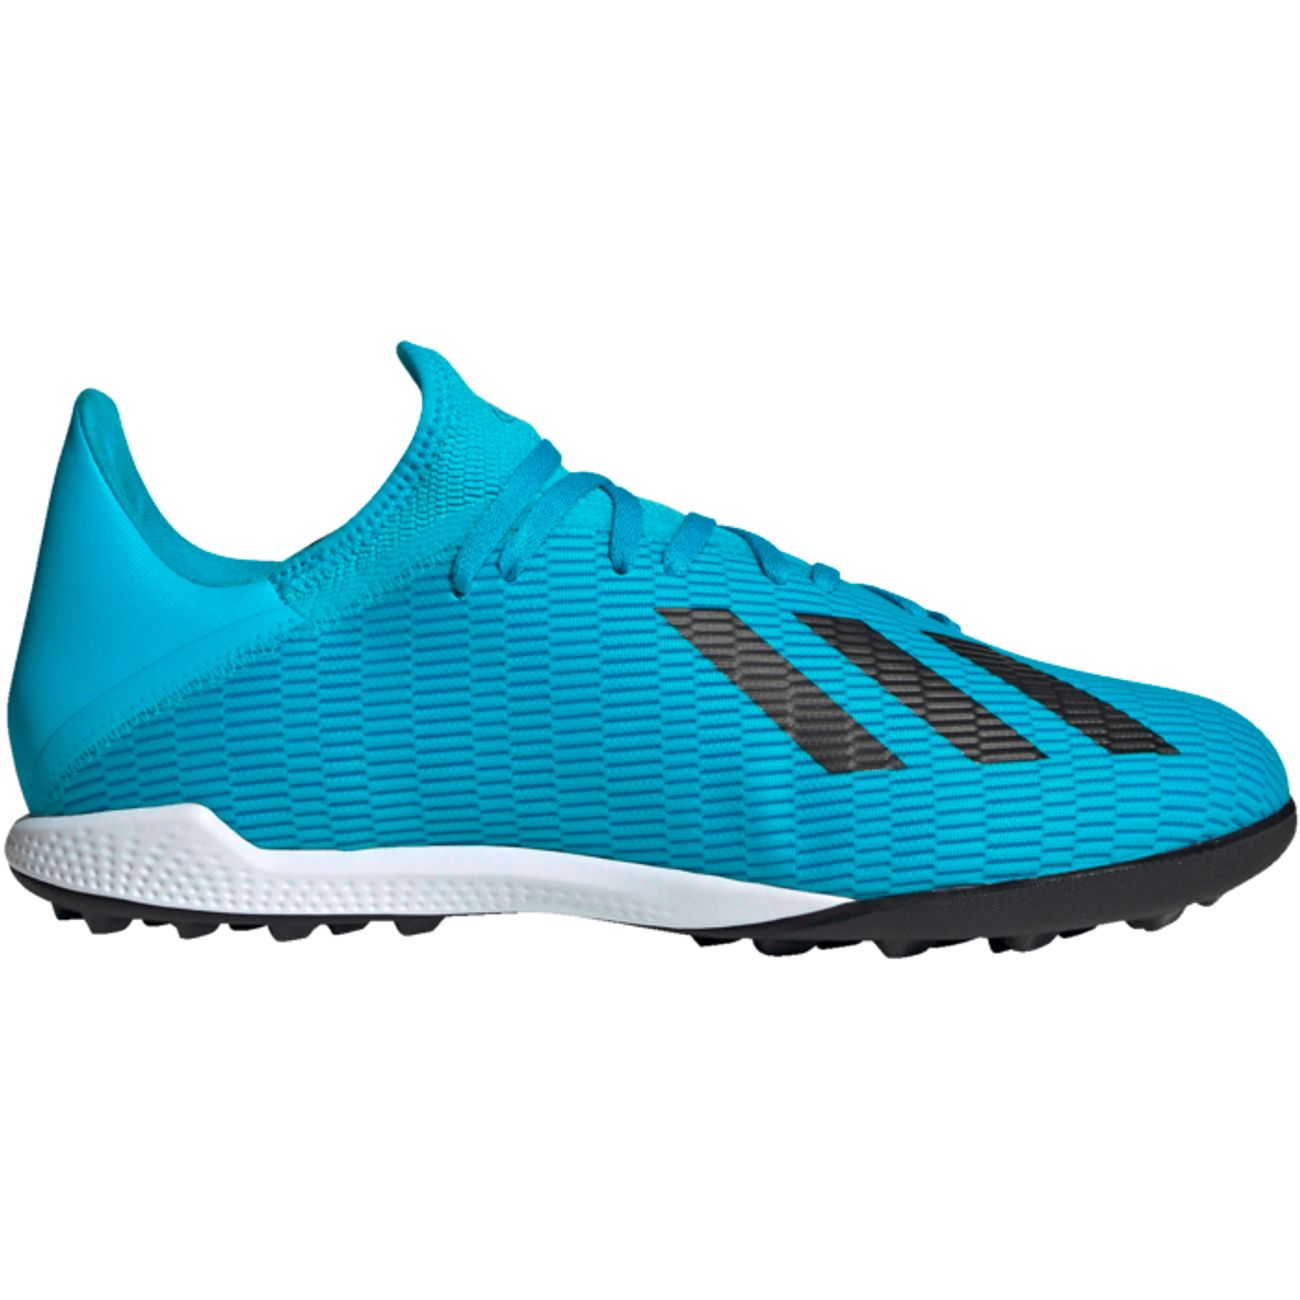 CHAUSSURES BASSES Football adulte ADIDAS X 19.3 TF